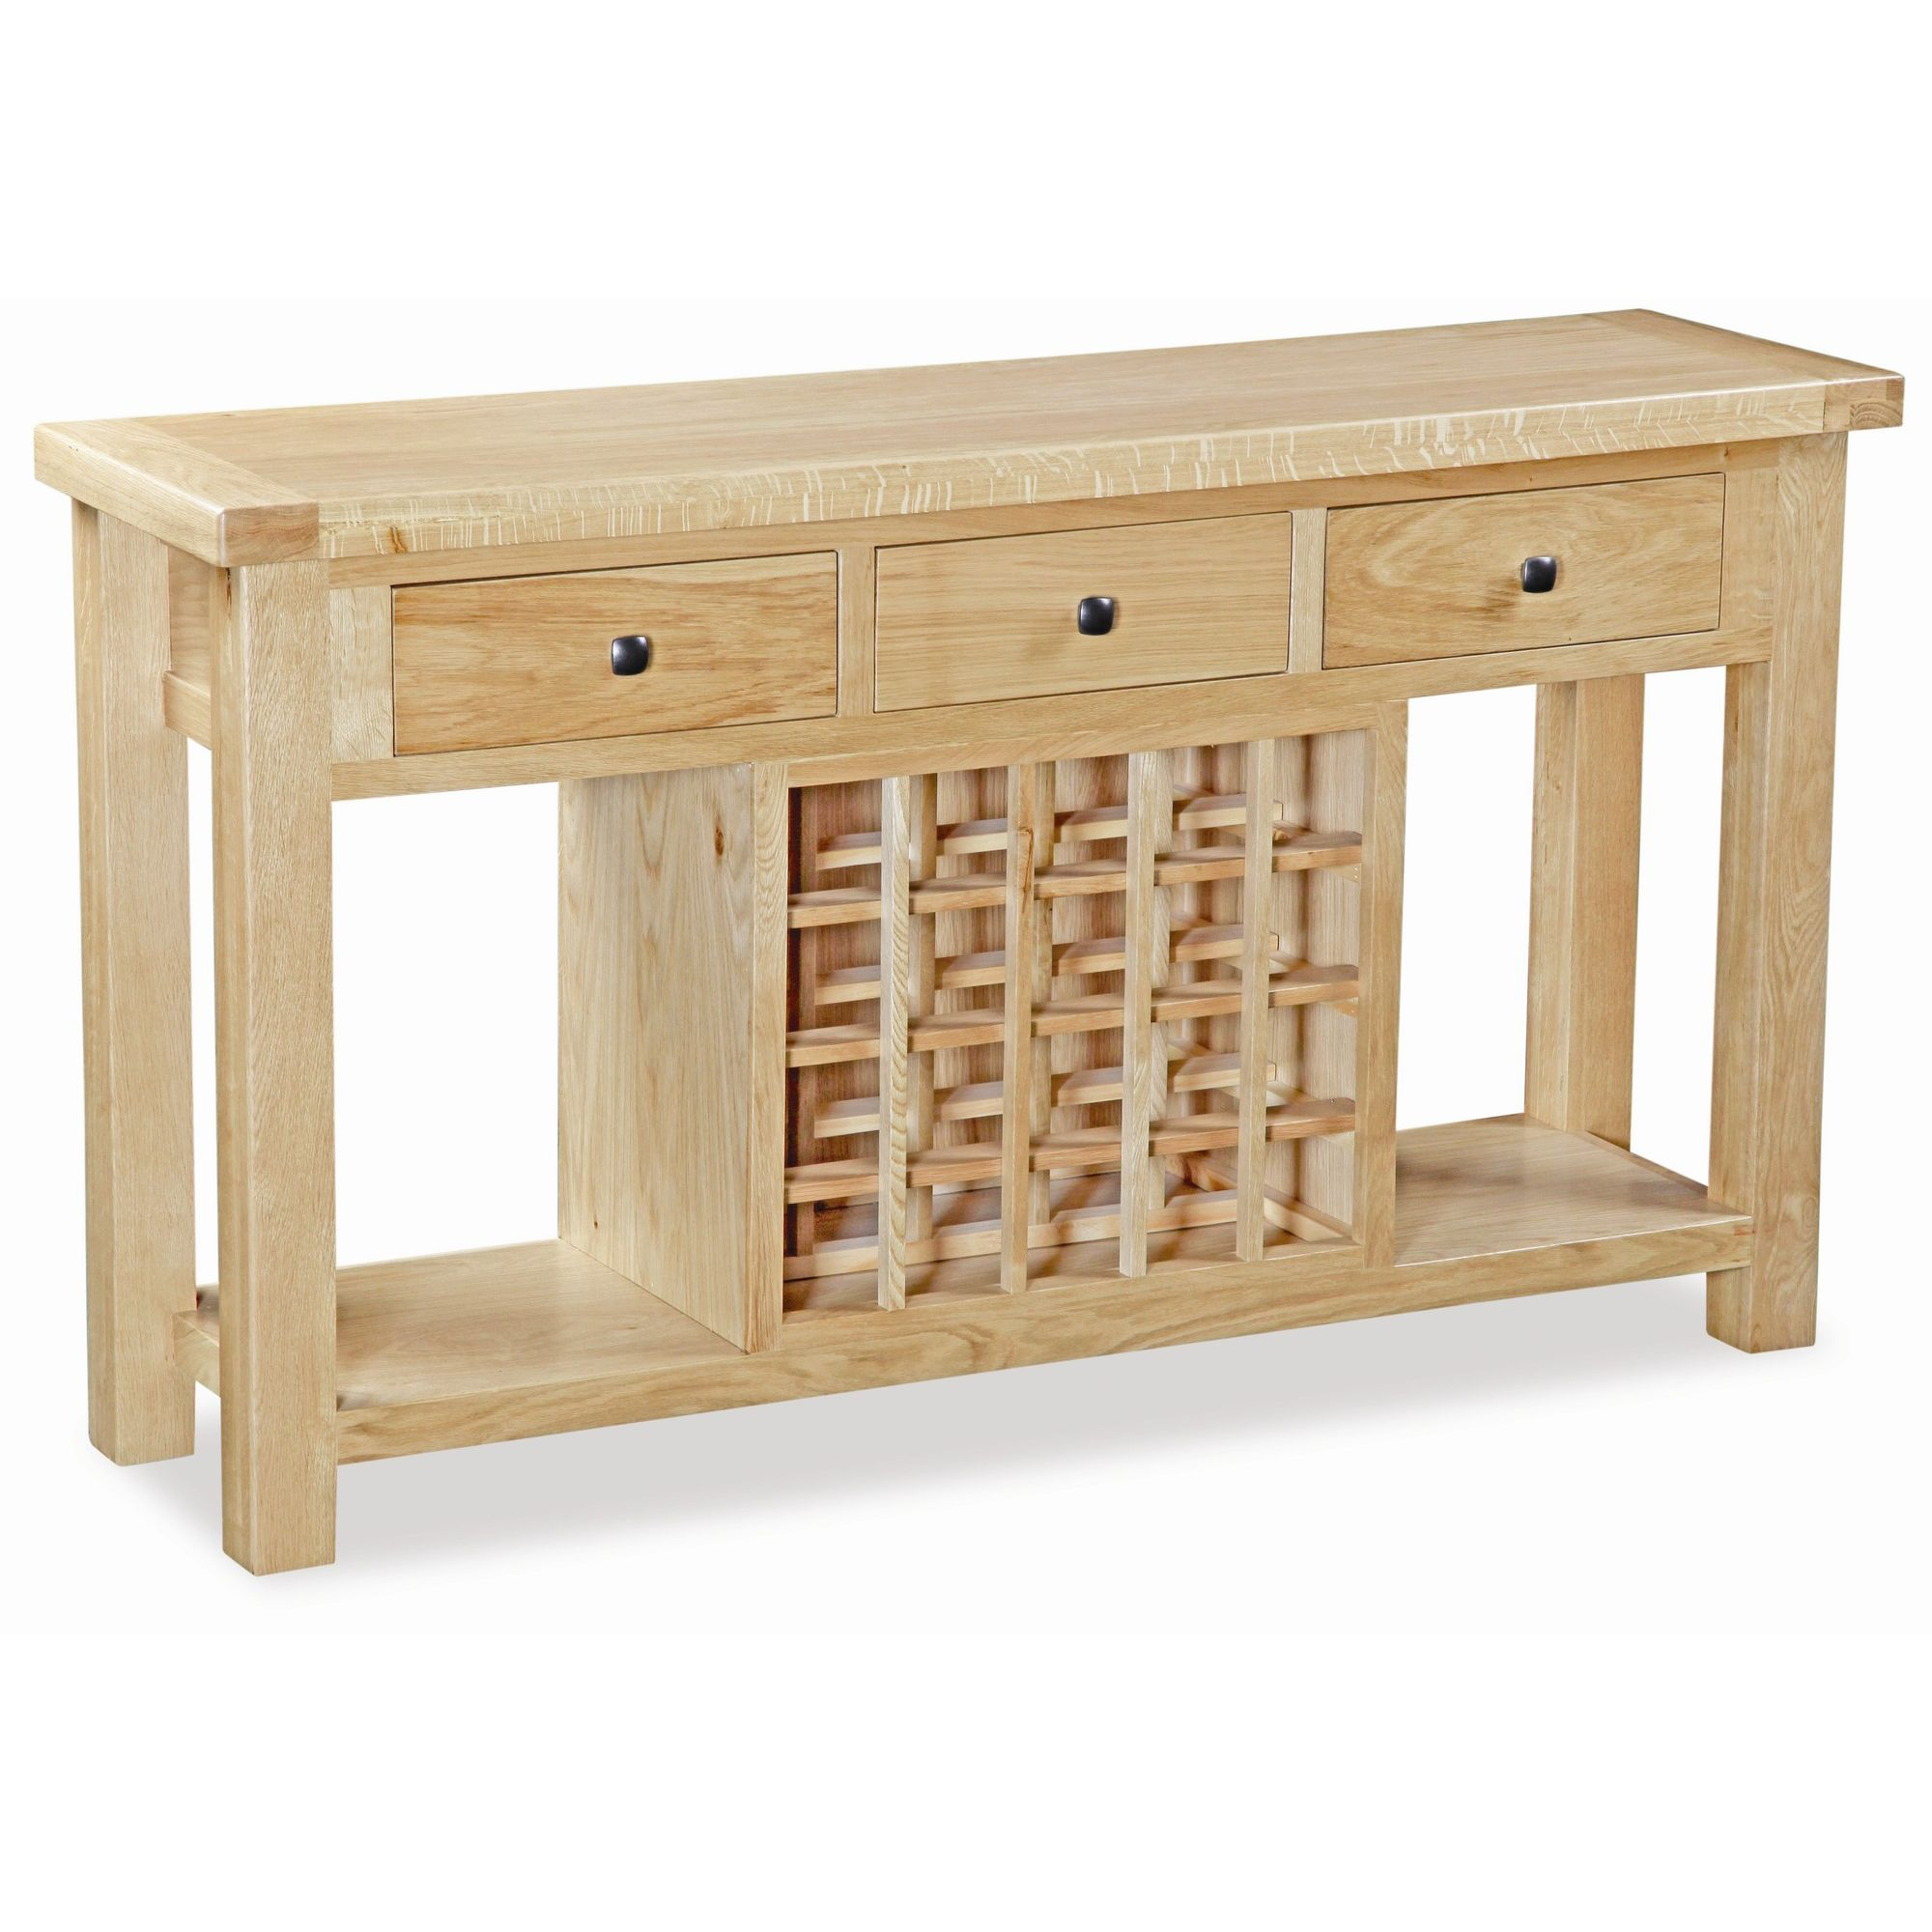 Alterton Furniture Chatsworth Console with Wine Rack at Tesco Direct